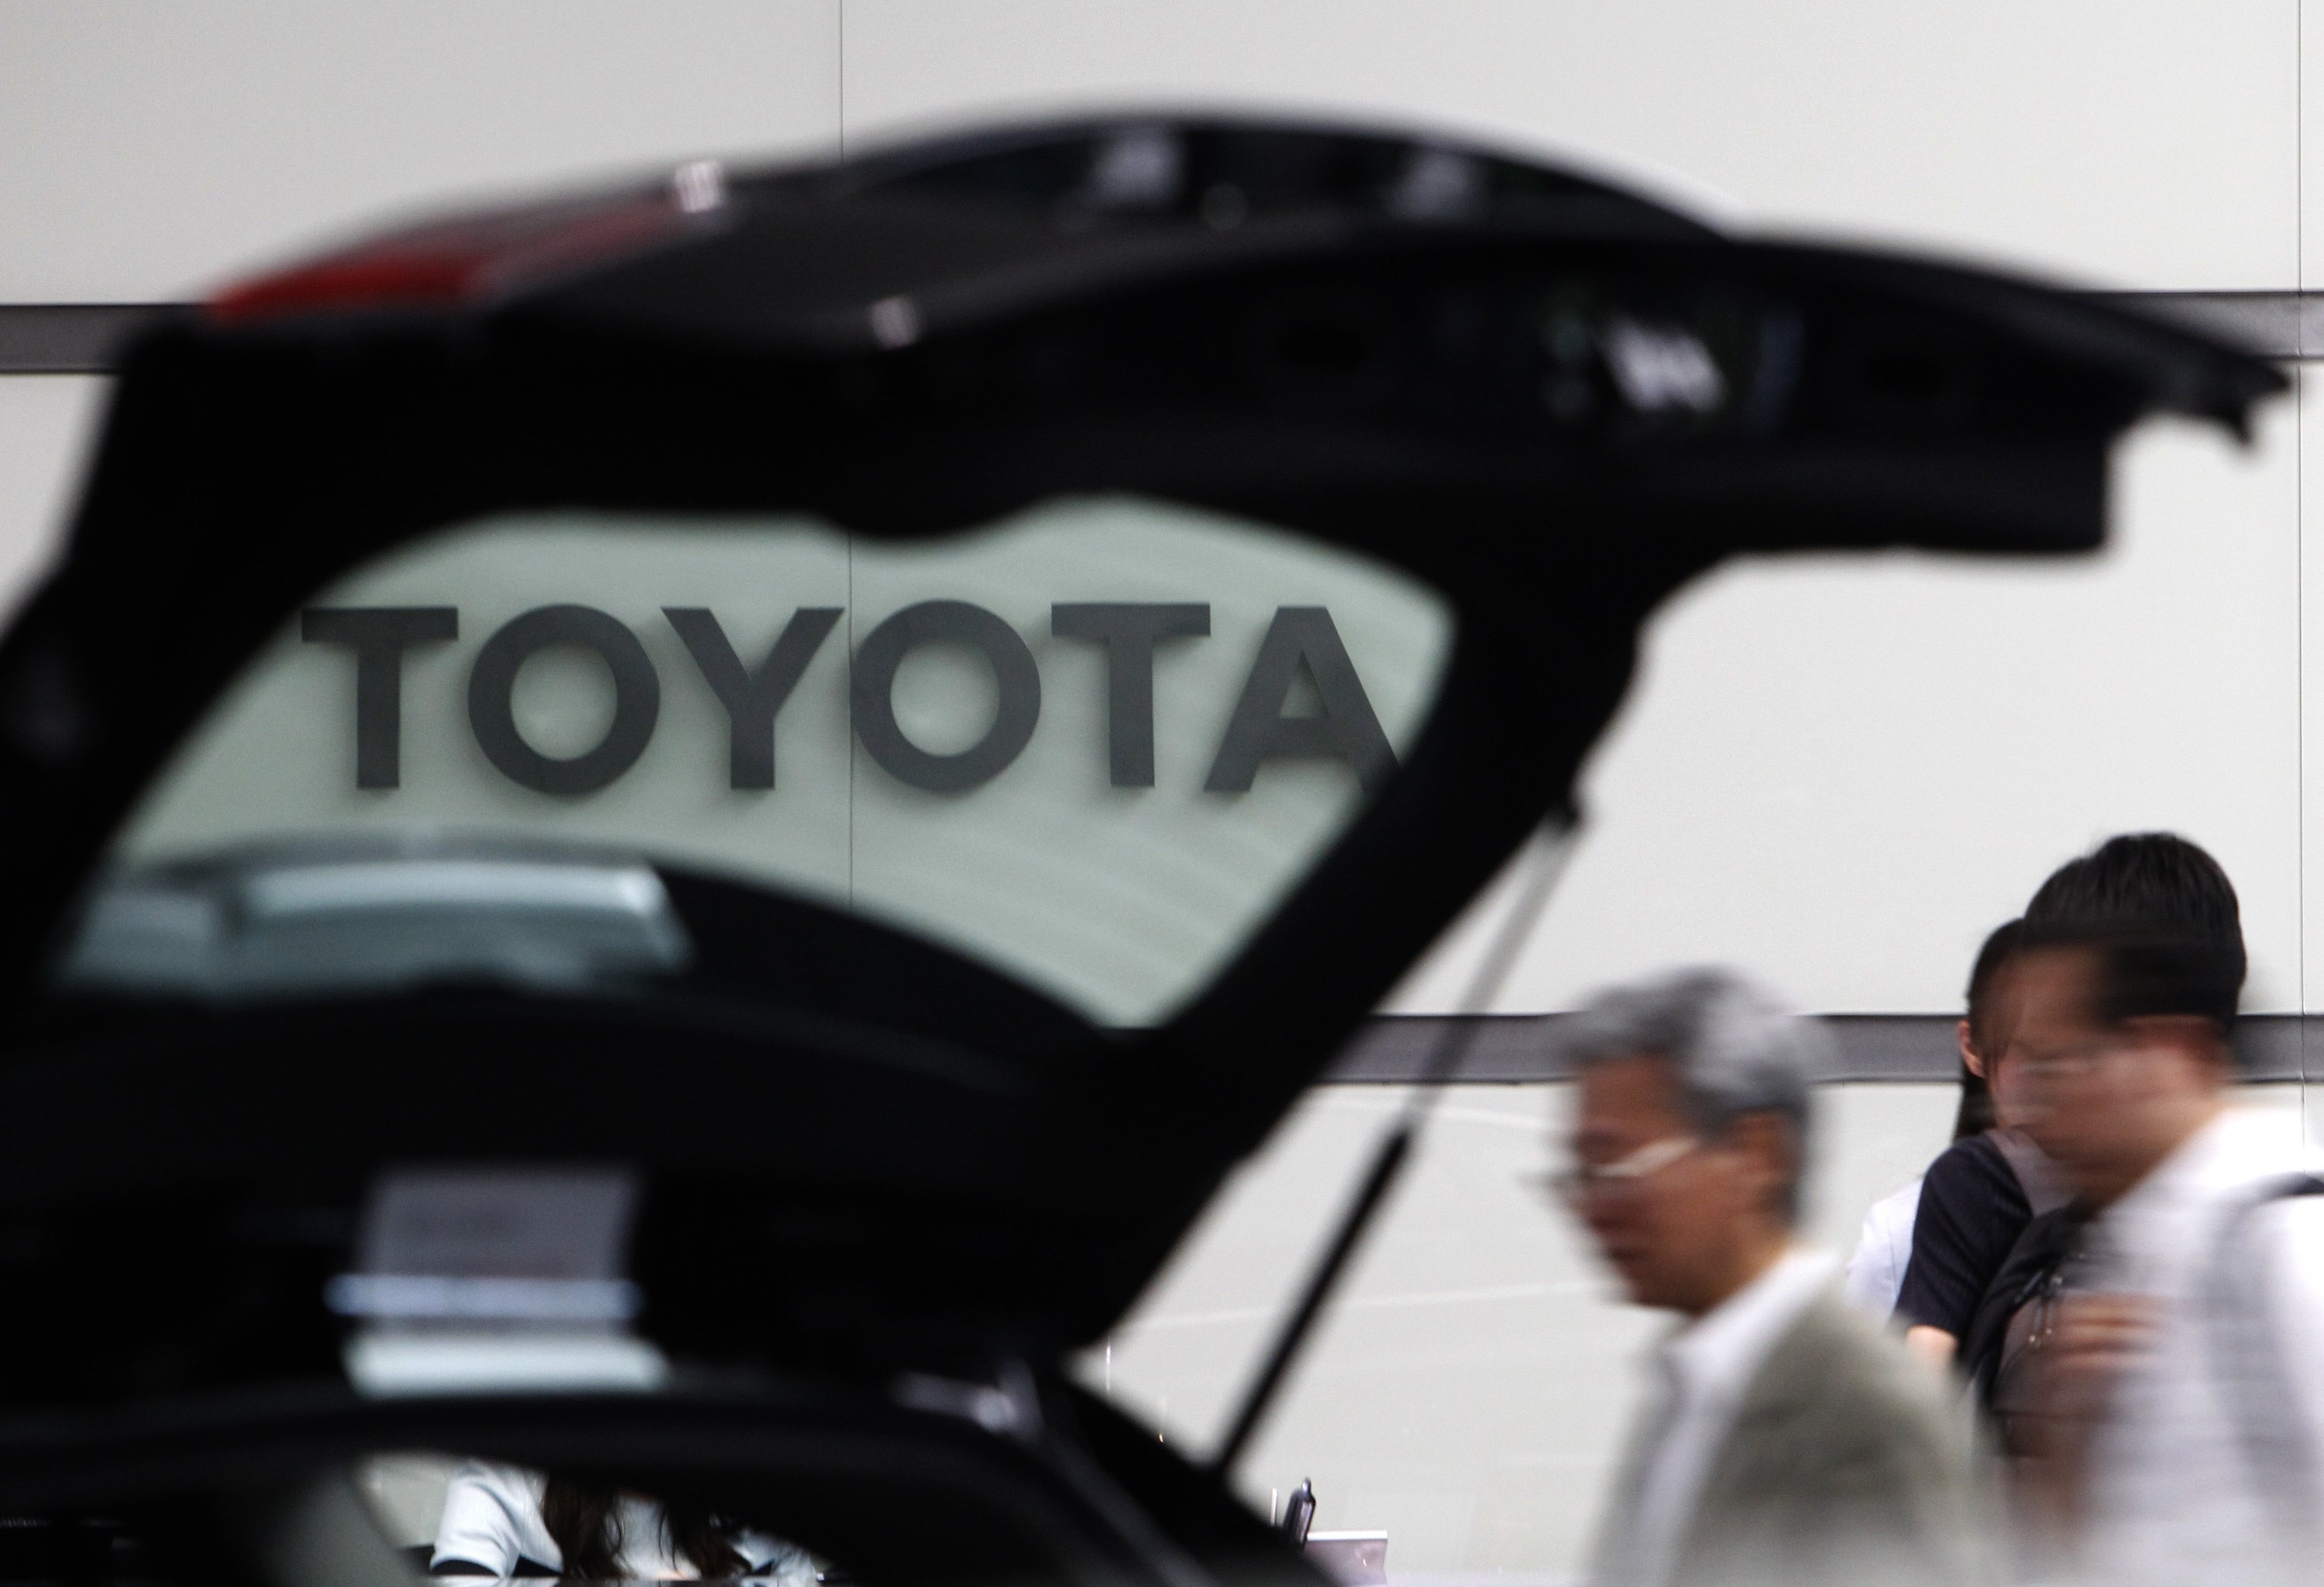 Toyota is latest Trump target over Mexico production plans